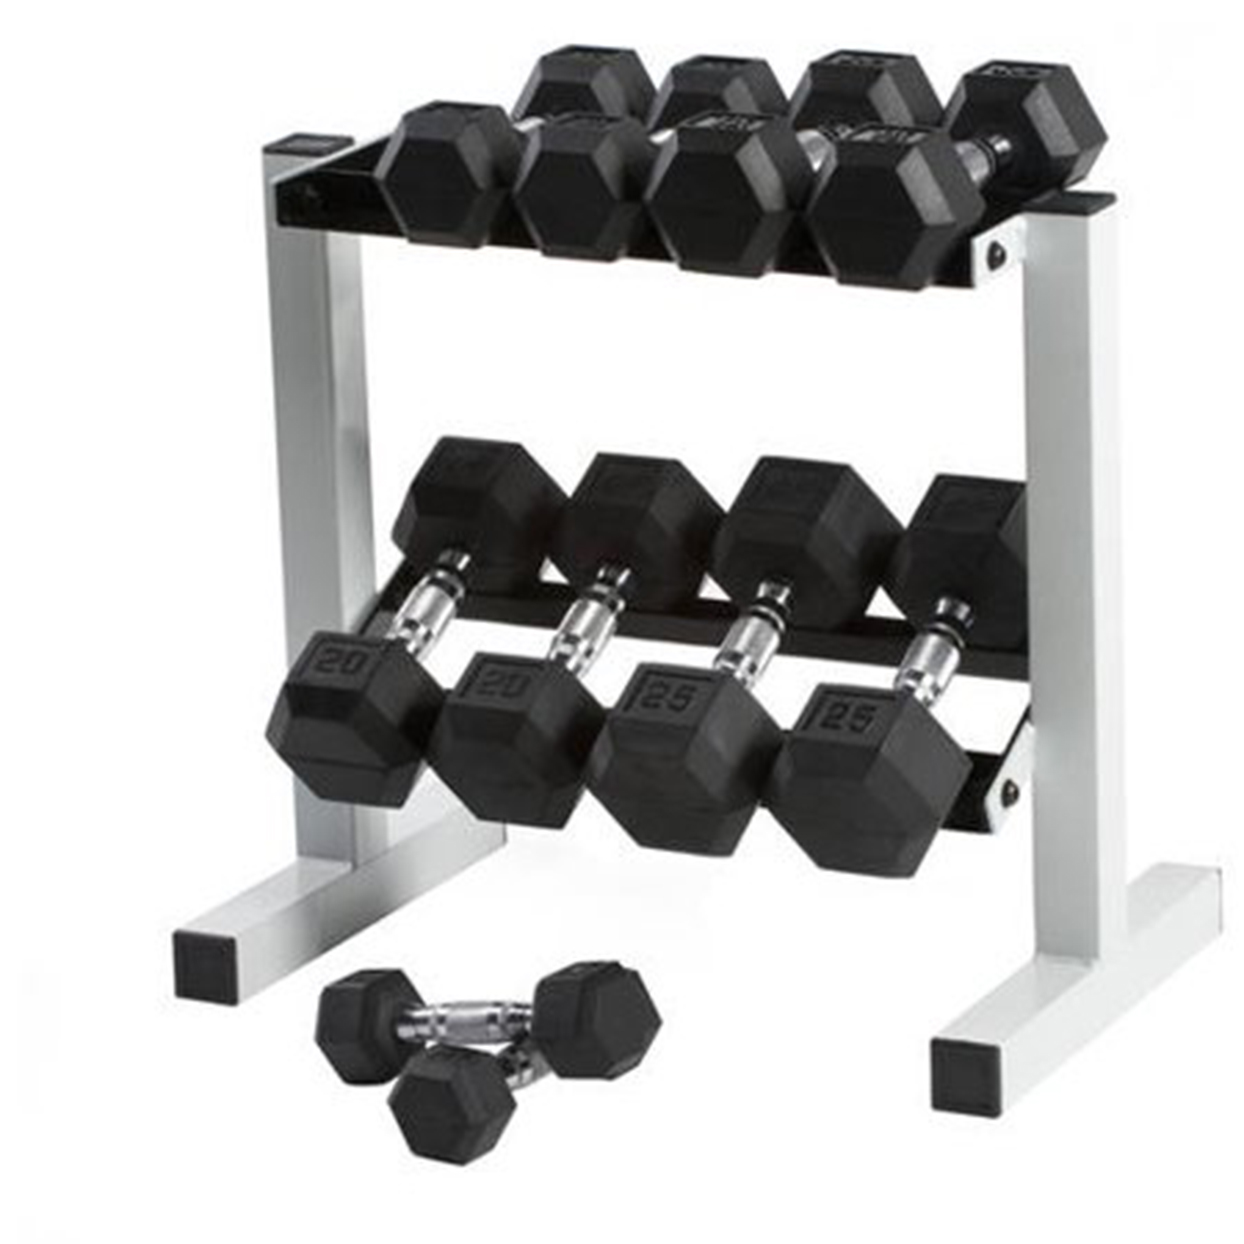 Free Weights And Machines For Your Physical Fitness Training